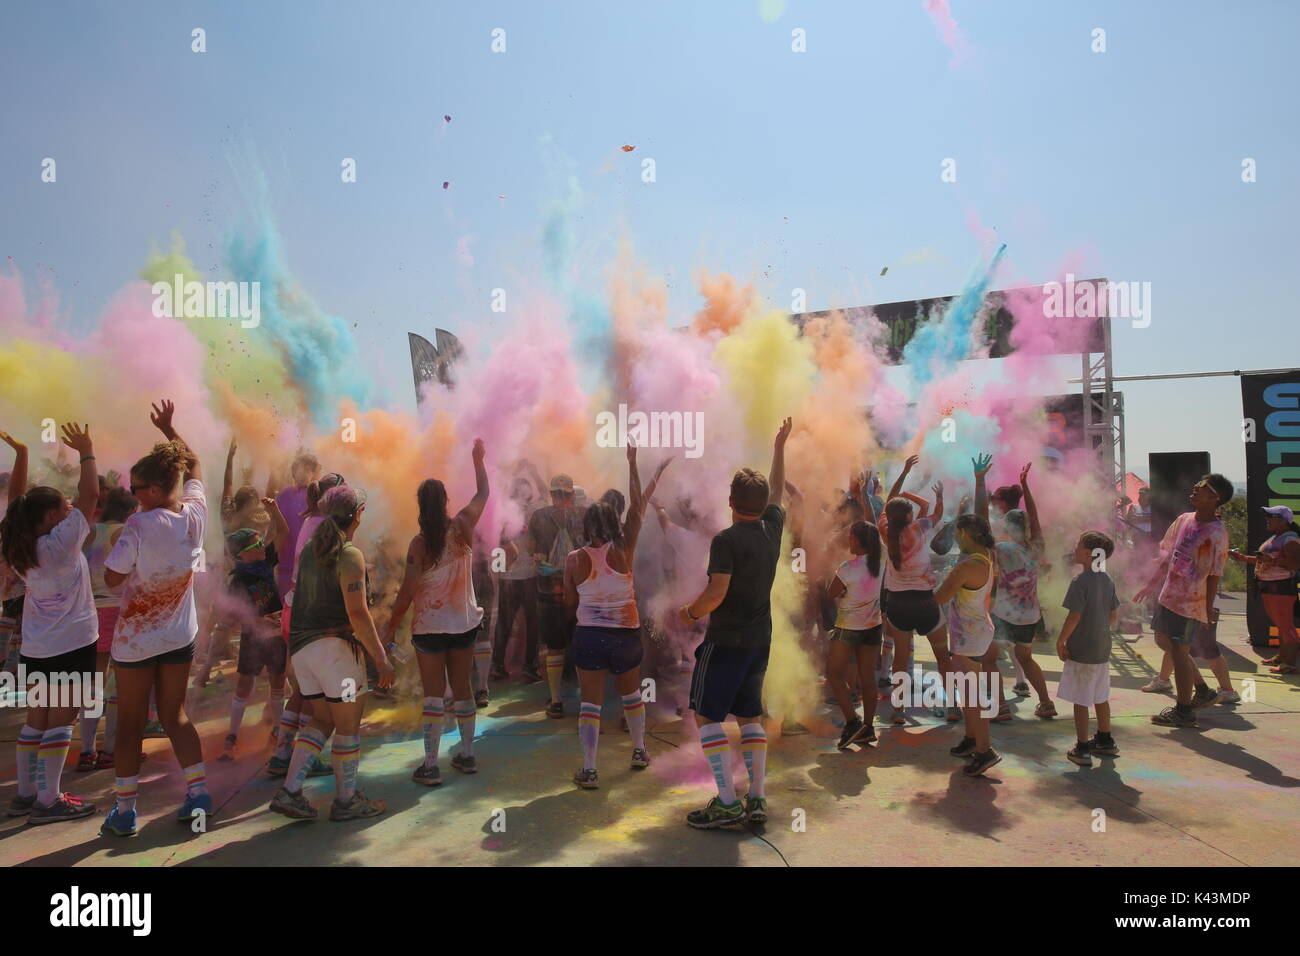 Runners throw color bombs in the air after complete the Color Me Rad 5K marathon run at the Marine Corps Air Station - Stock Image